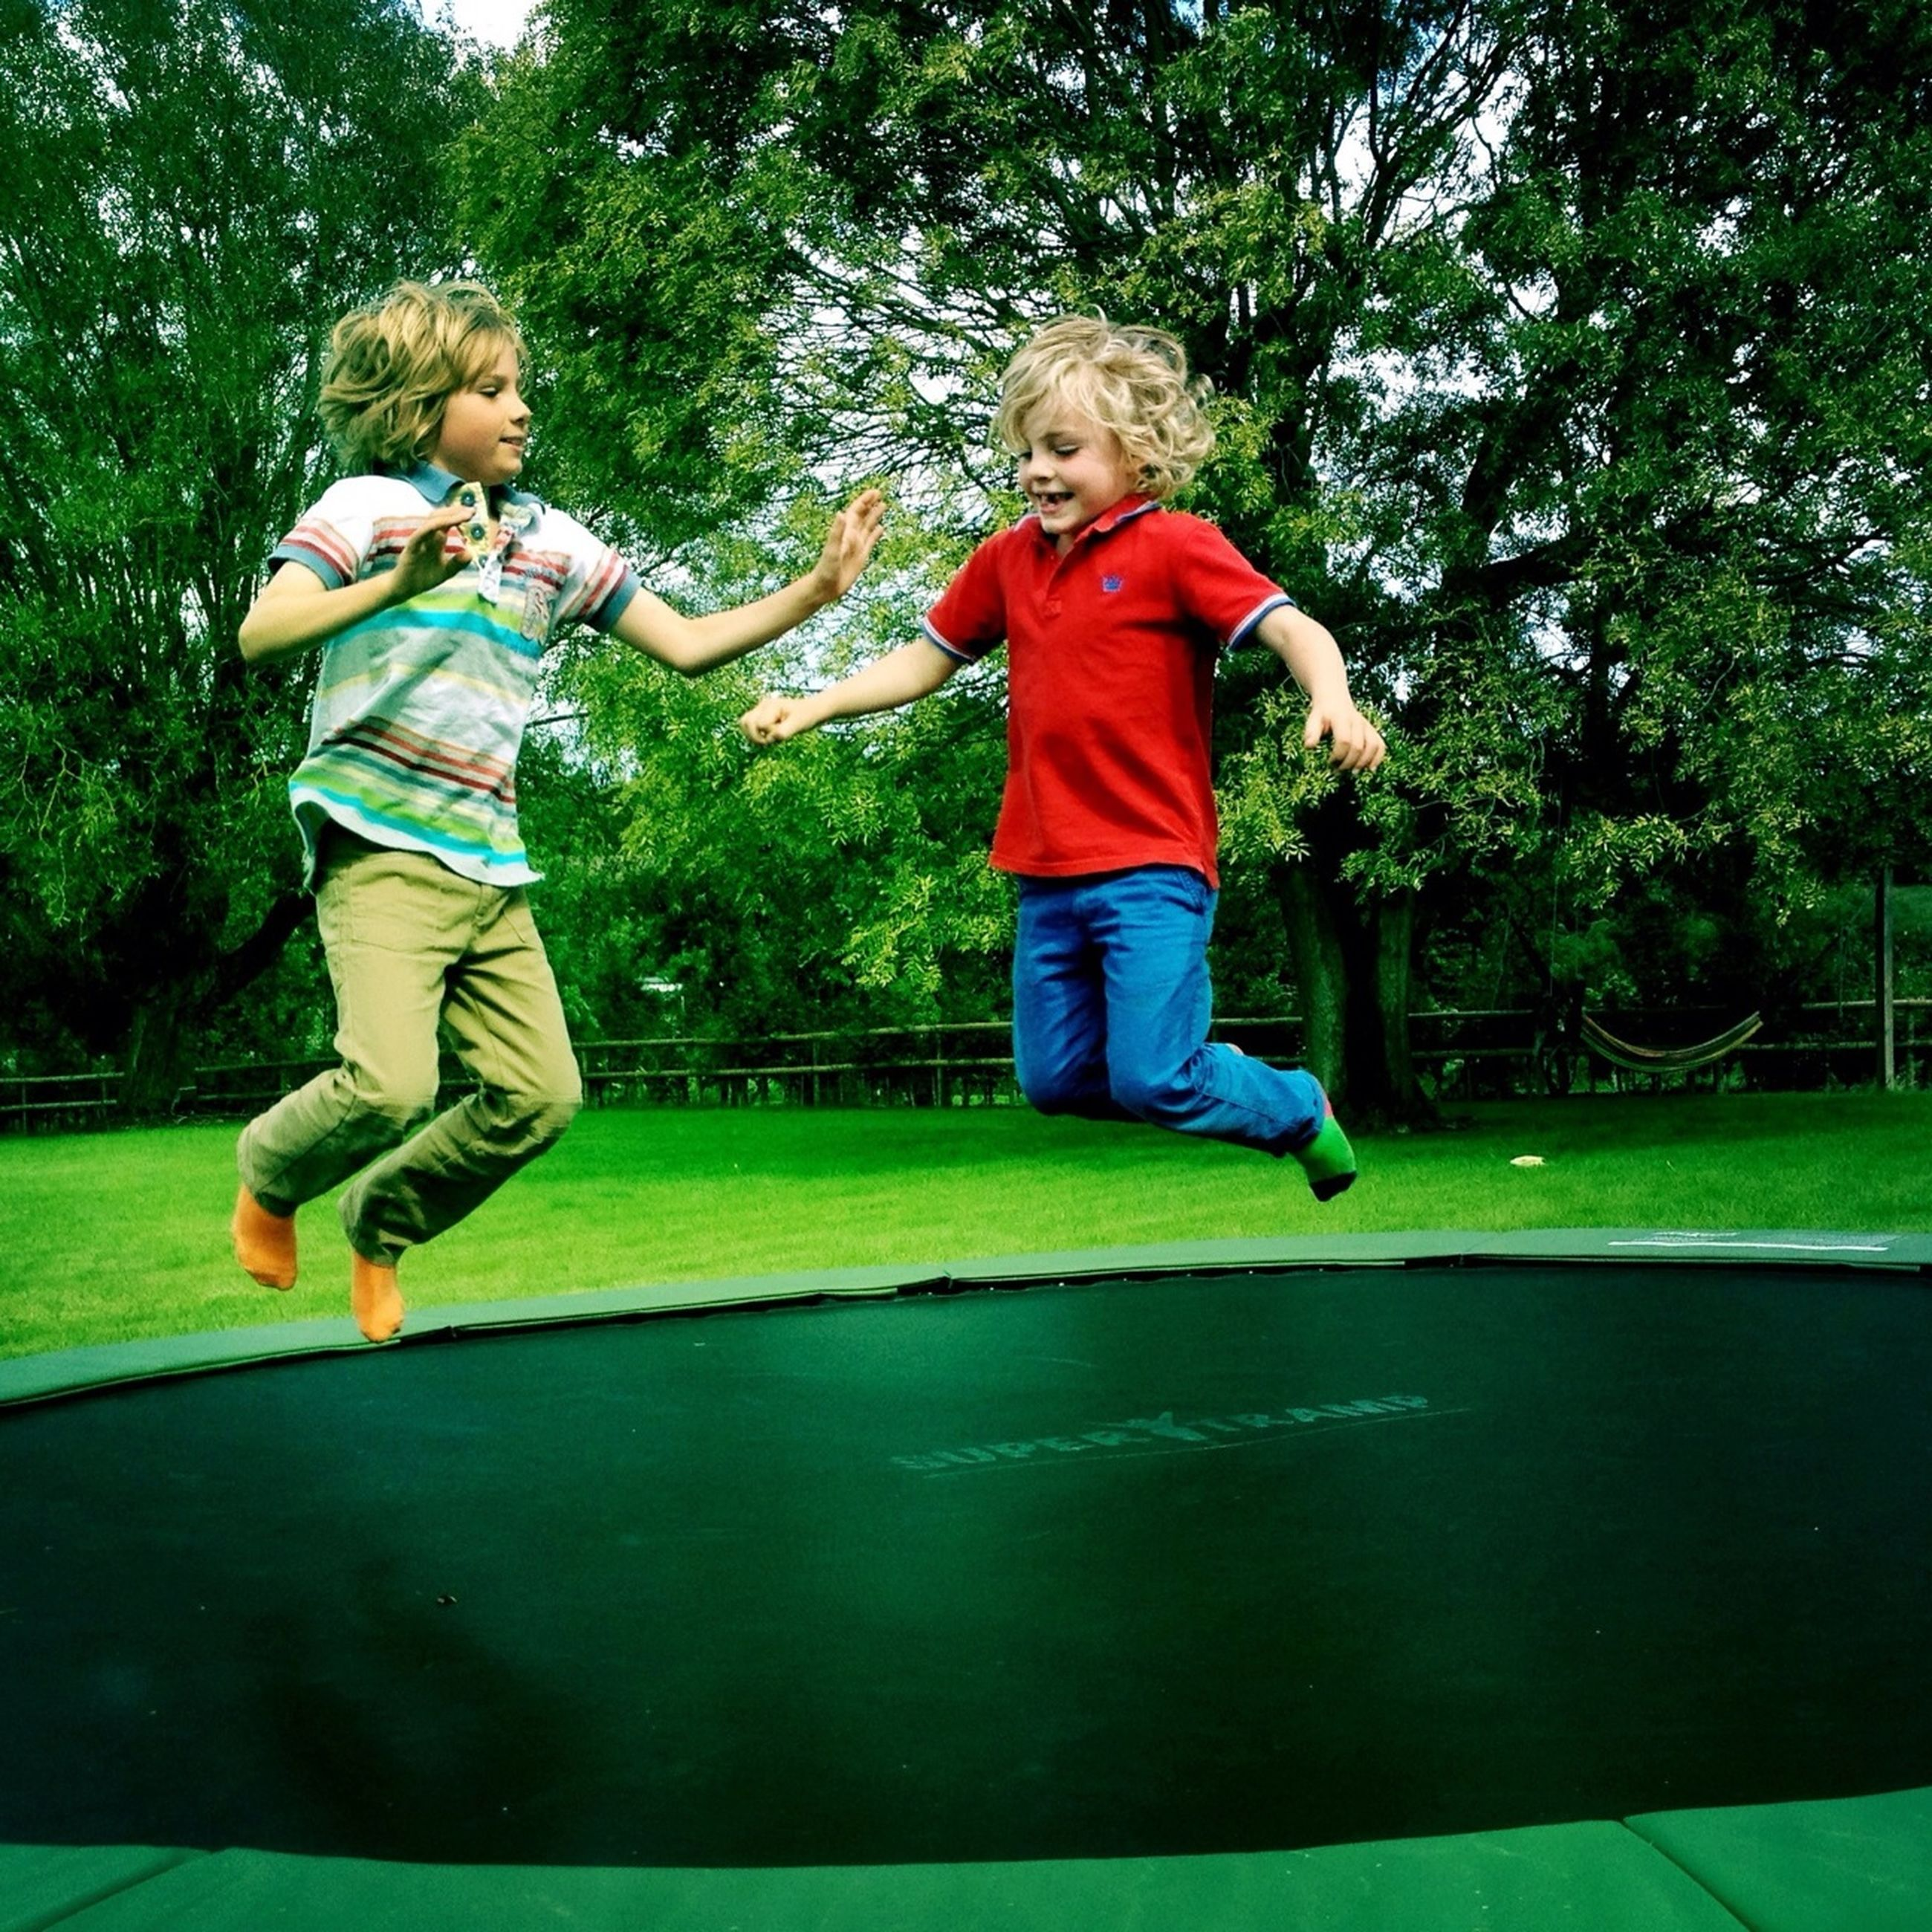 childhood, full length, elementary age, park - man made space, boys, tree, leisure activity, person, casual clothing, girls, lifestyles, playing, grass, fun, innocence, enjoyment, park, playground